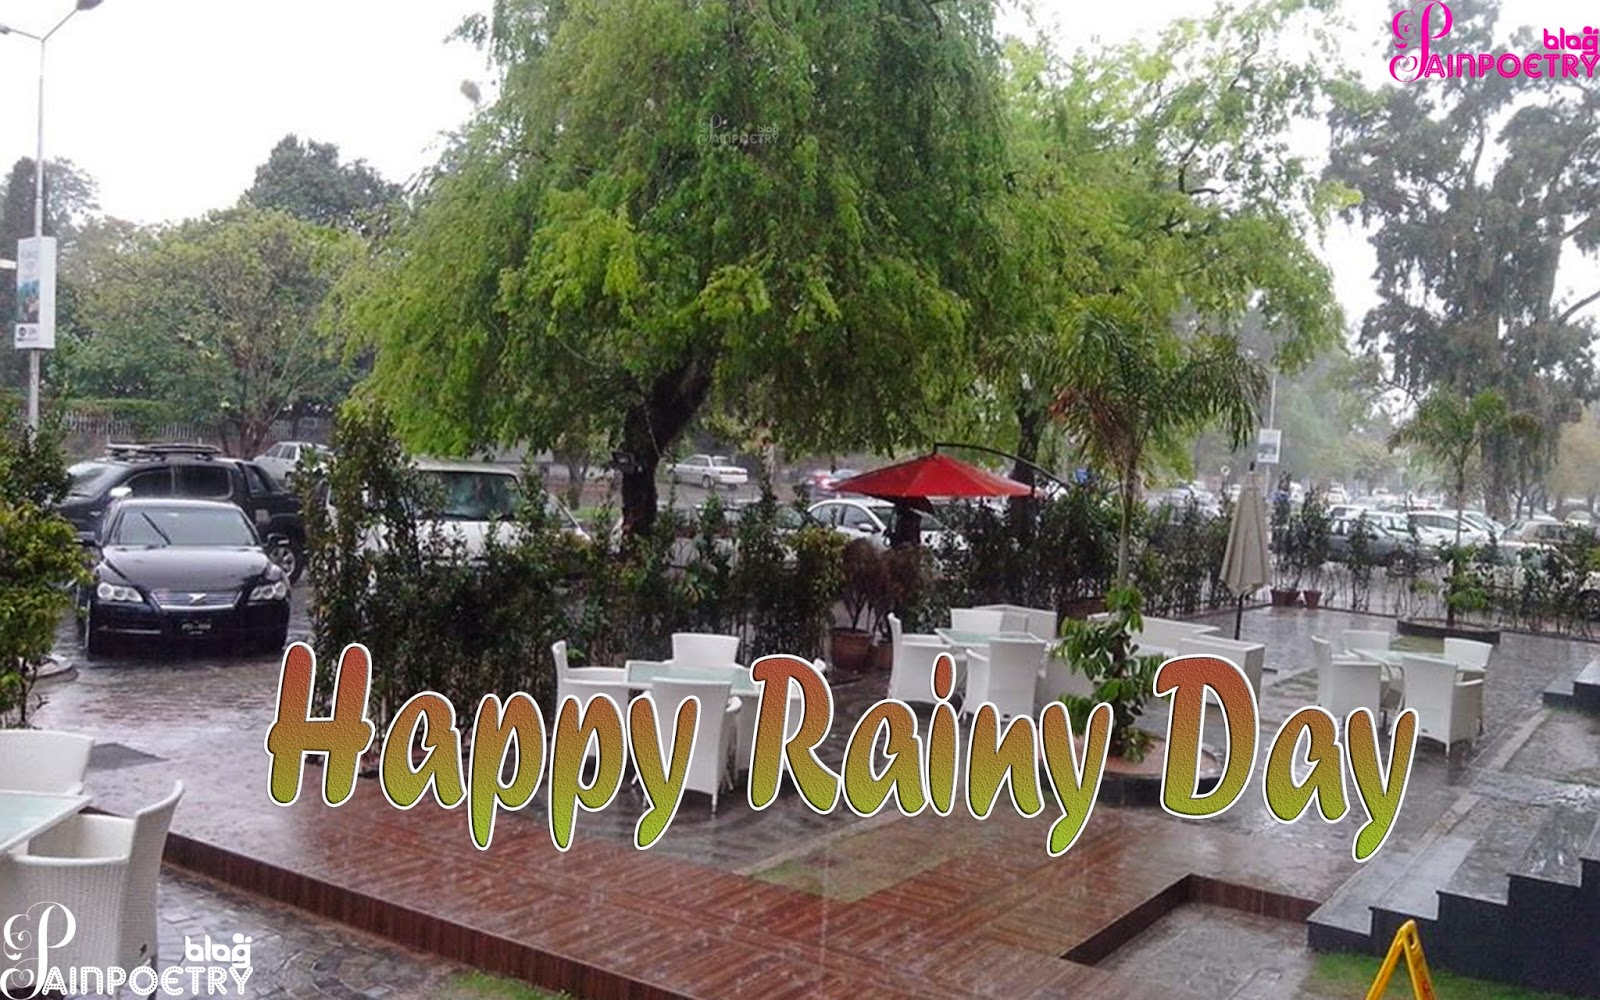 Rainy-Day-Enjoy-Rainy-Day-Wallpaper-Wide